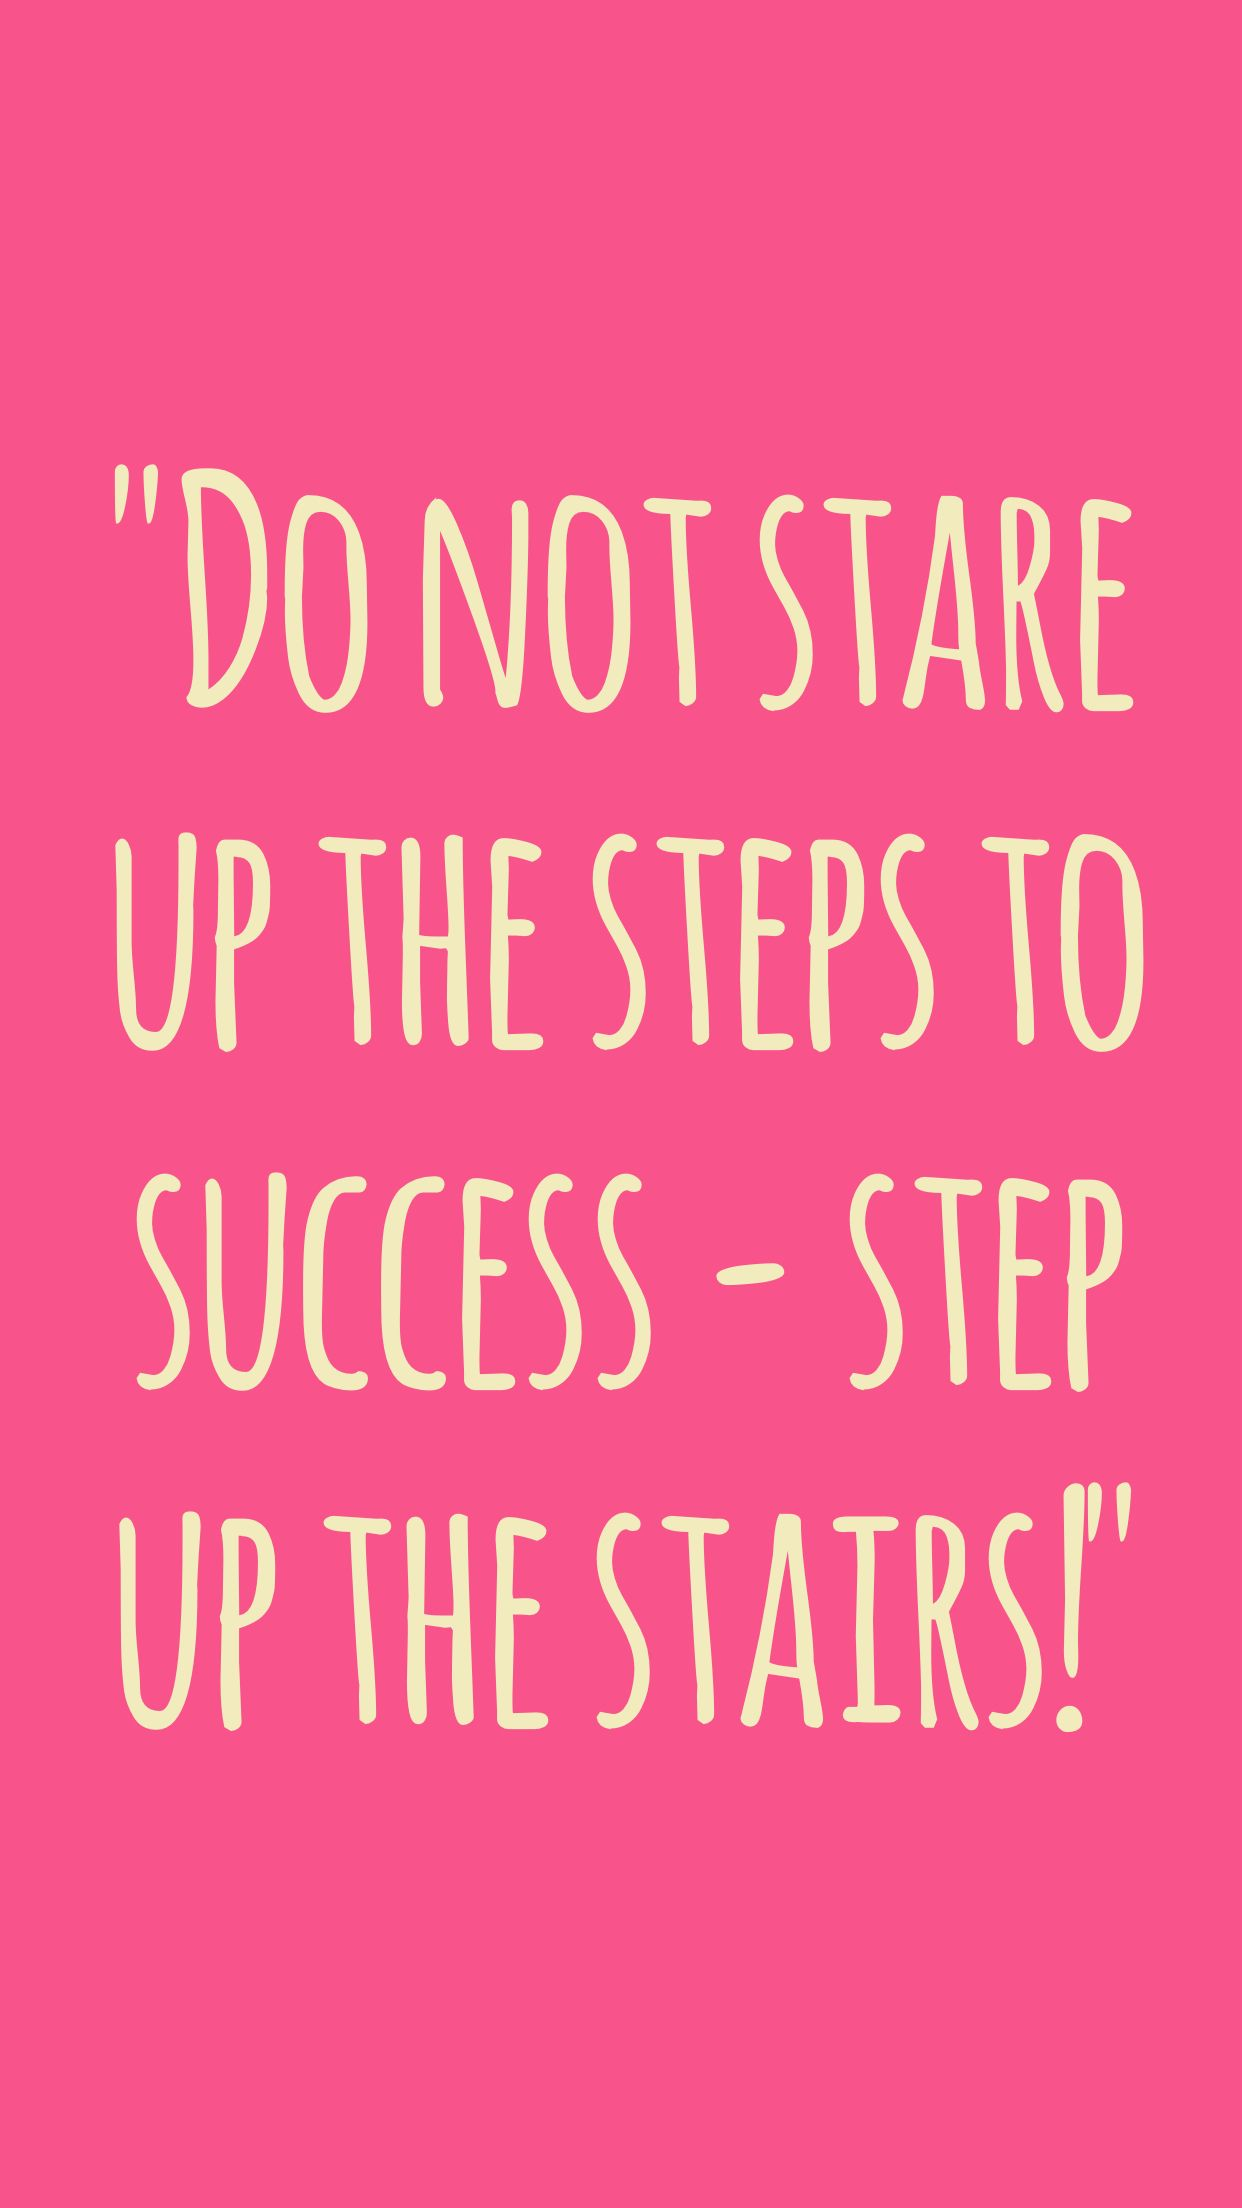 Quotes On Women Empowerment Do Not Stare Up The Steps To Success  Step Up The Stairs